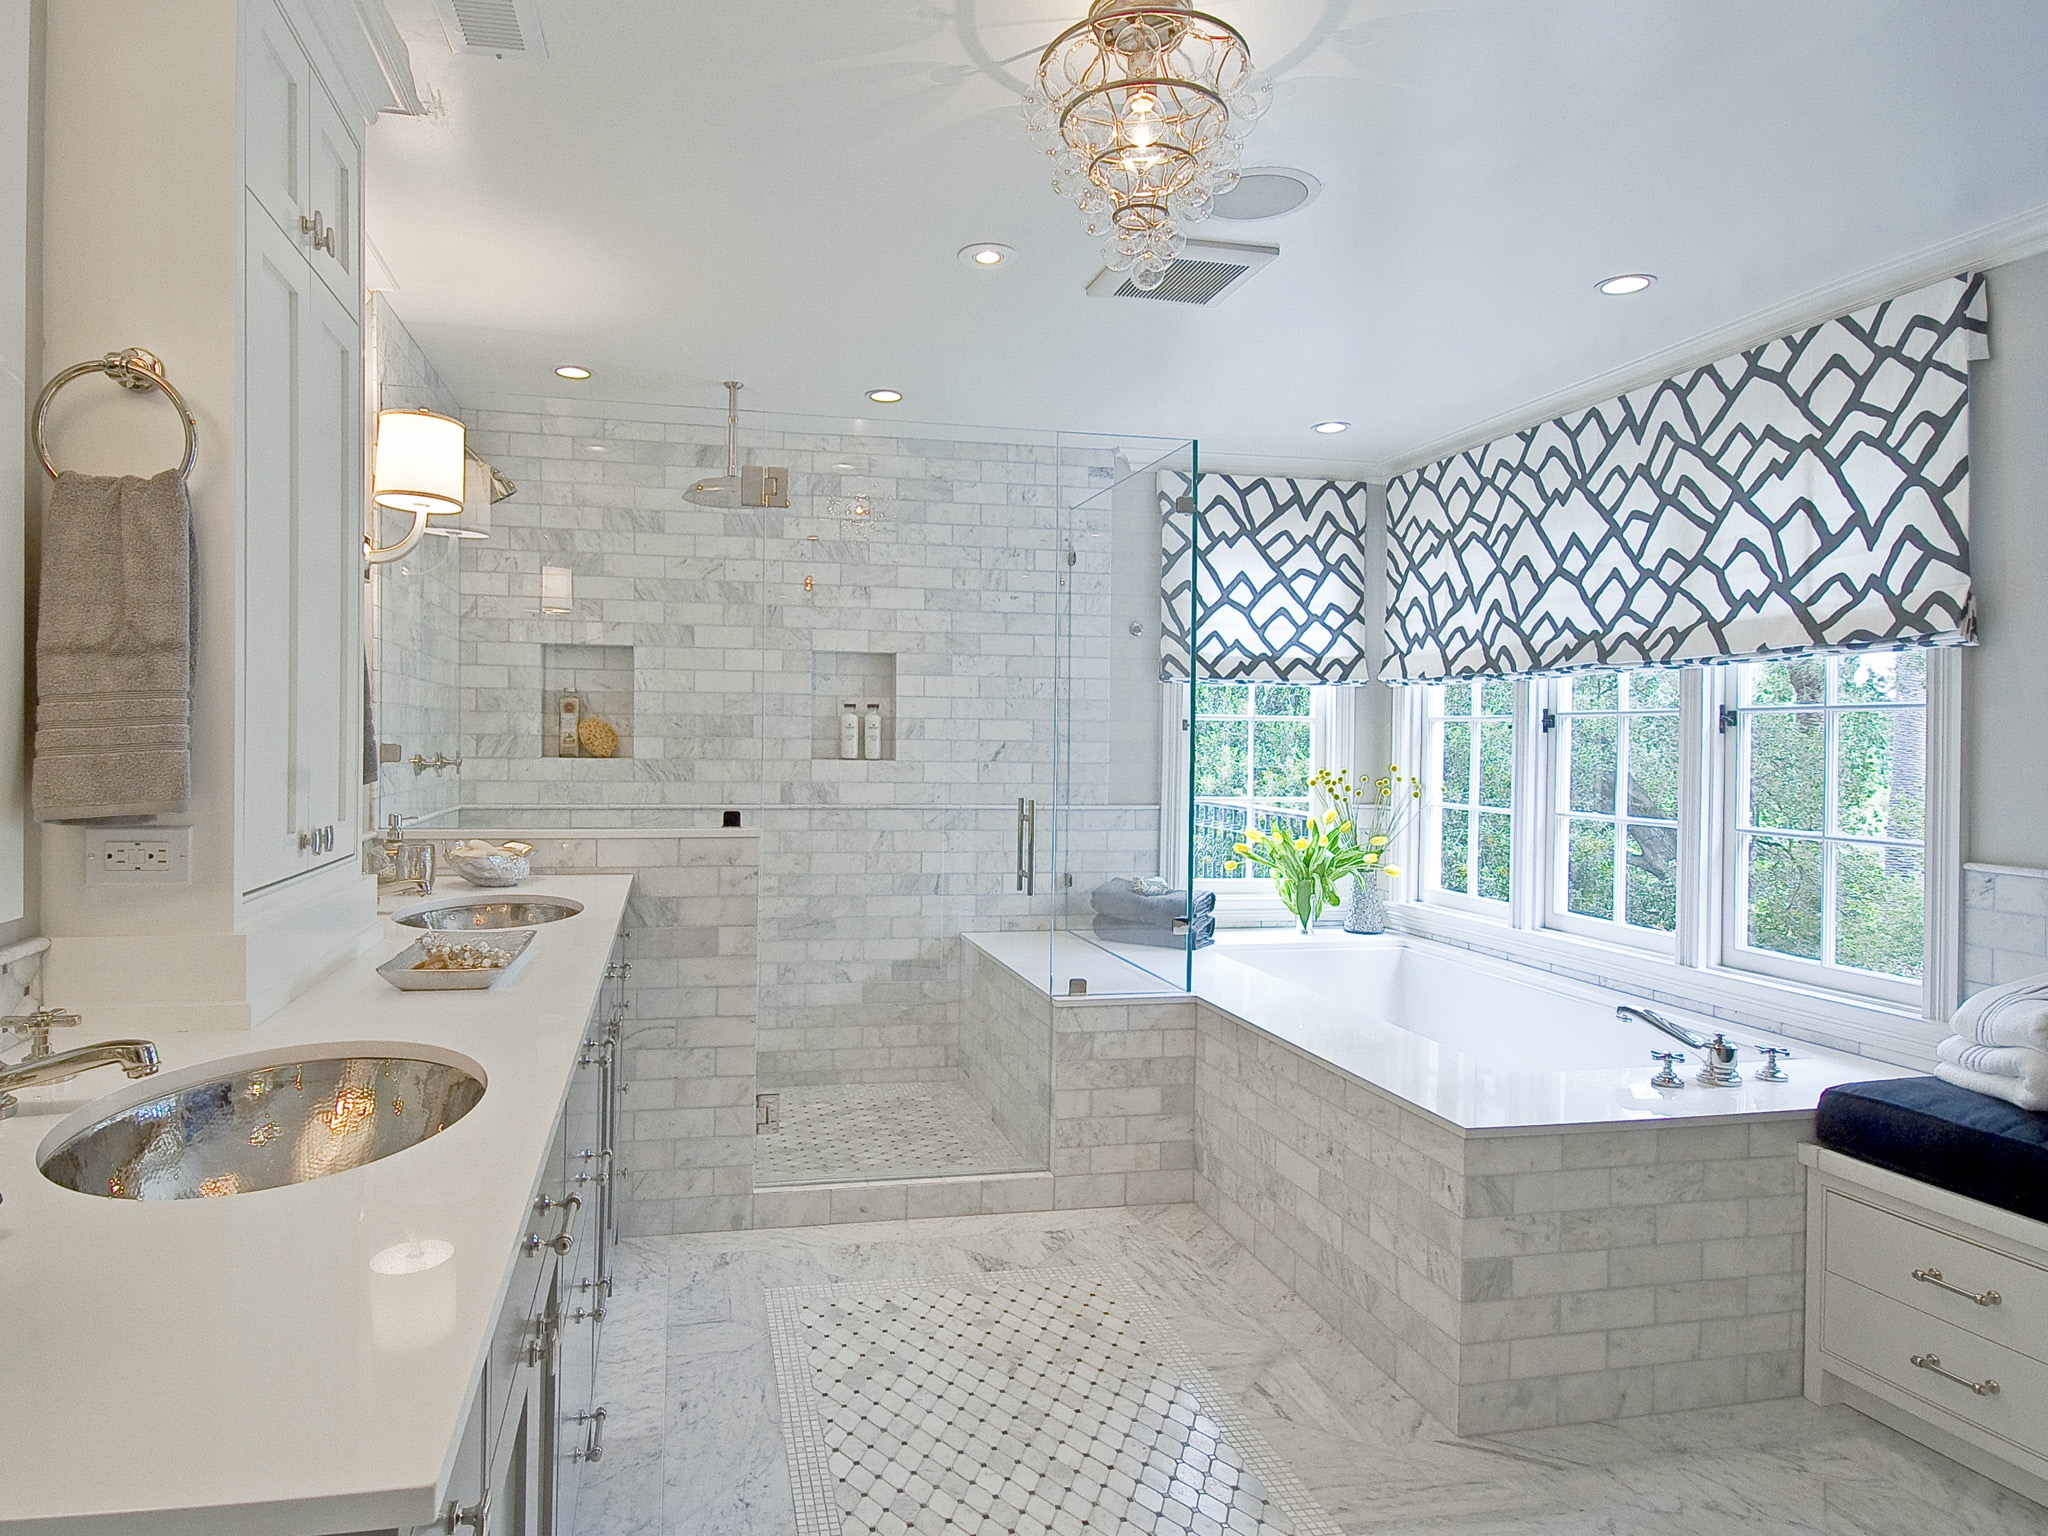 White Ceramic Tiles Wall Decor For Modern Bathroom Interior (Image 18 of 18)